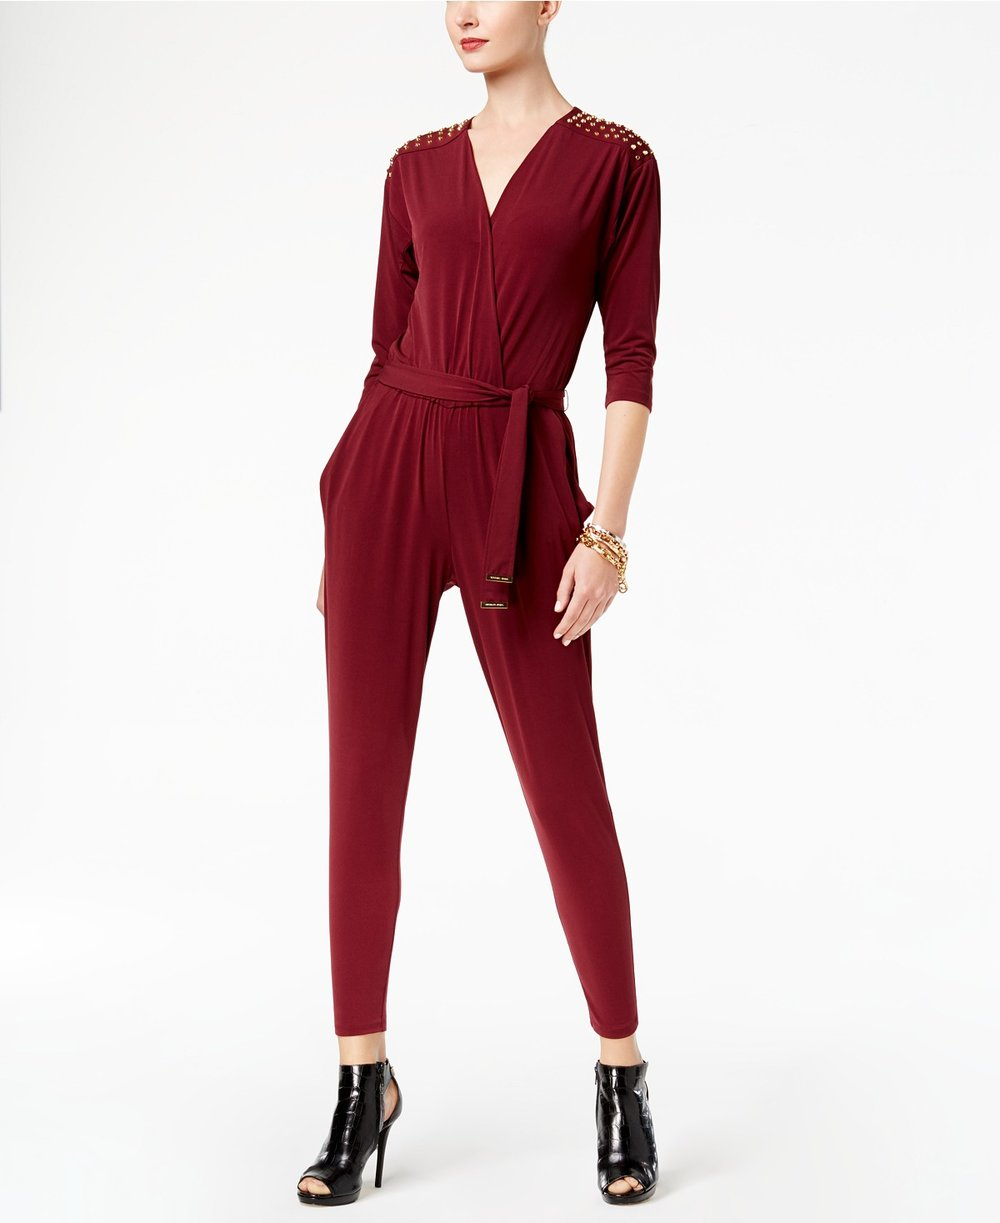 MICHAEL Michael Kors  Petite Embellished Surplice Jumpsuit. Available in two colors. Macy's. Was: $160. Now: $119.